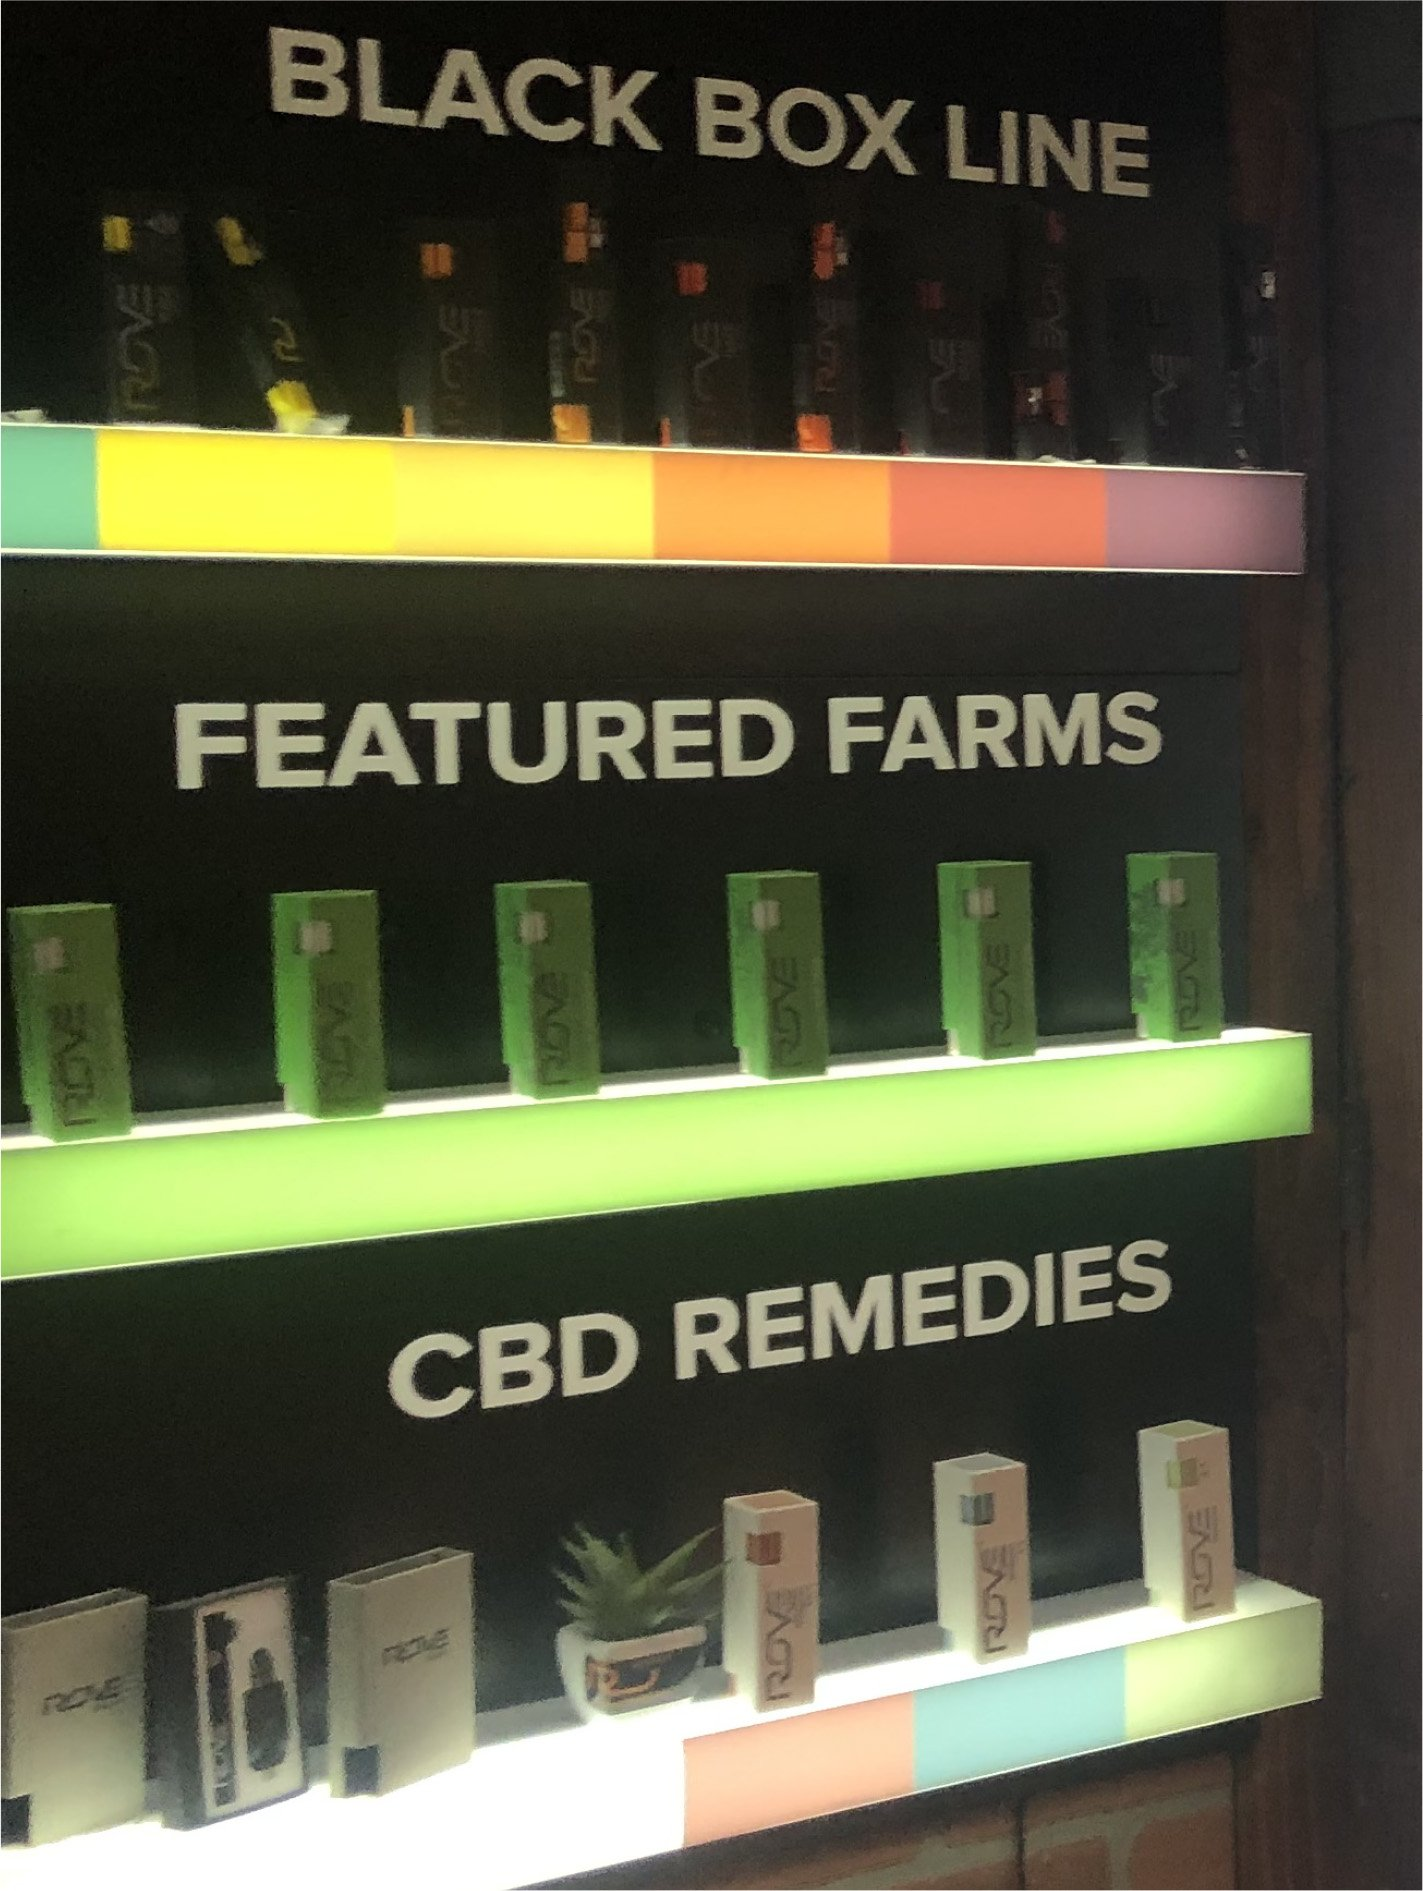 In-Store Display Rove Brand Featured Farms, Black Box and CBD